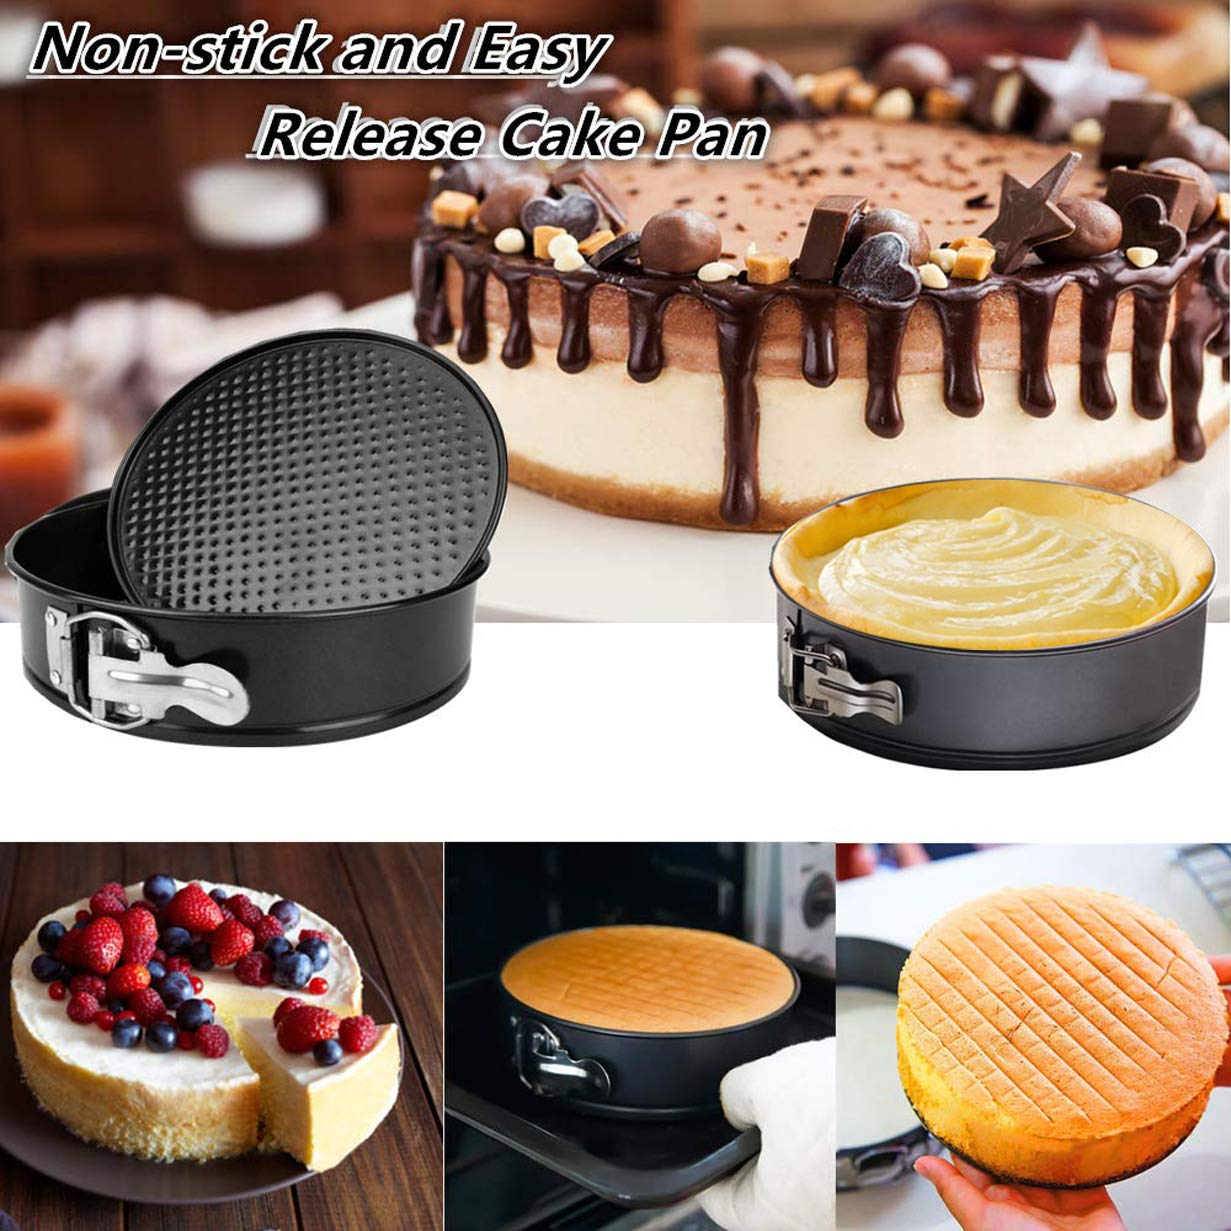 AMEON Accessories for Instant Pot 6, 8 Quart - Steamer Basket, Egg Rack, Springform Pan, Egg Bites Mold, Egg Beater, Pot Mitts, Silicone Mat and Food Tong for Insta Pot, Pressure Cooker, Rice Cooker by AMEON (Image #4)